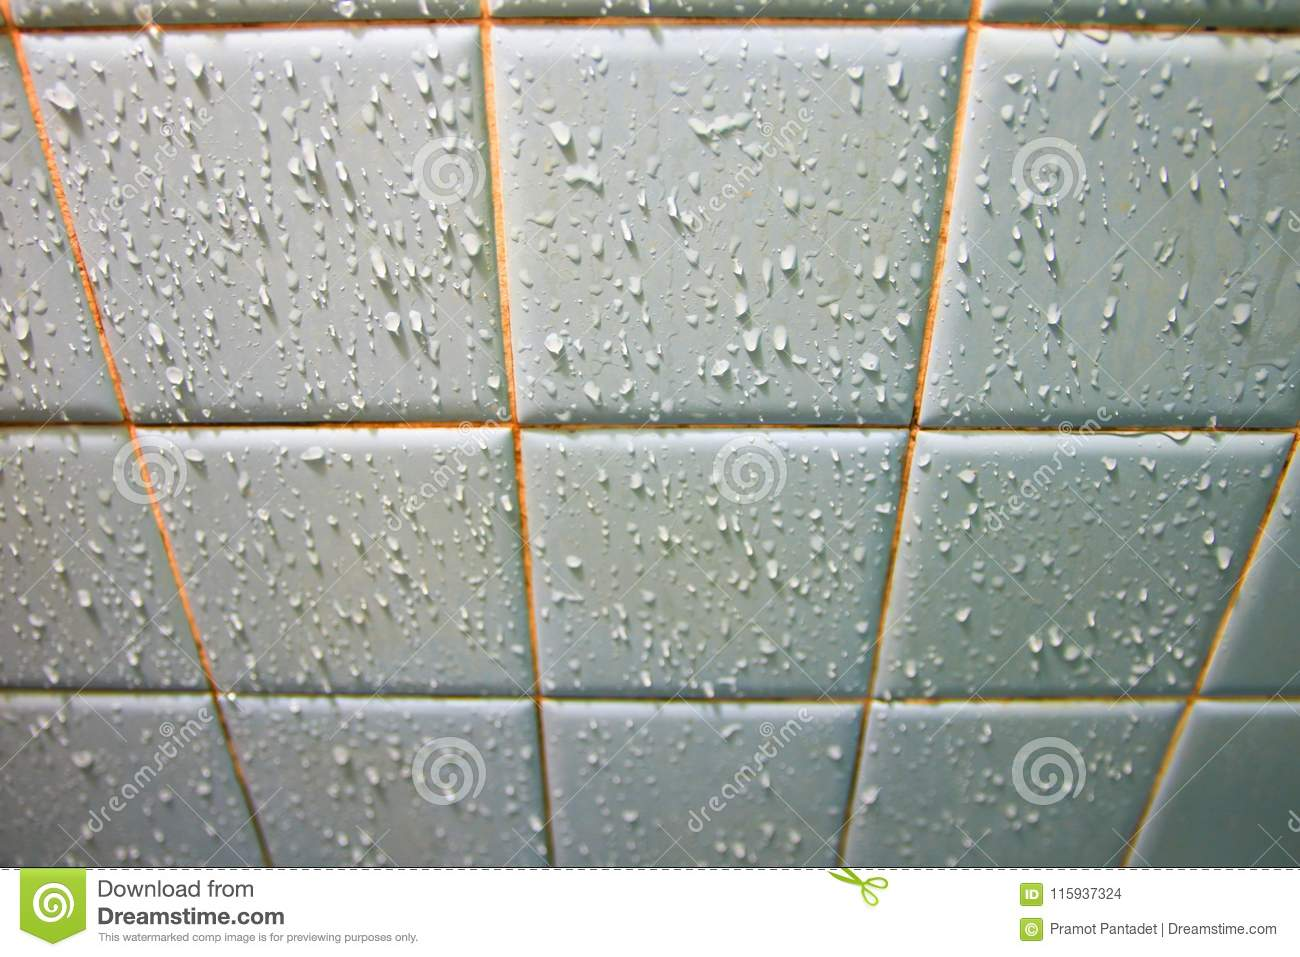 Water Drops On The Ceramic Tile Wall In Bathroom Select Focus With